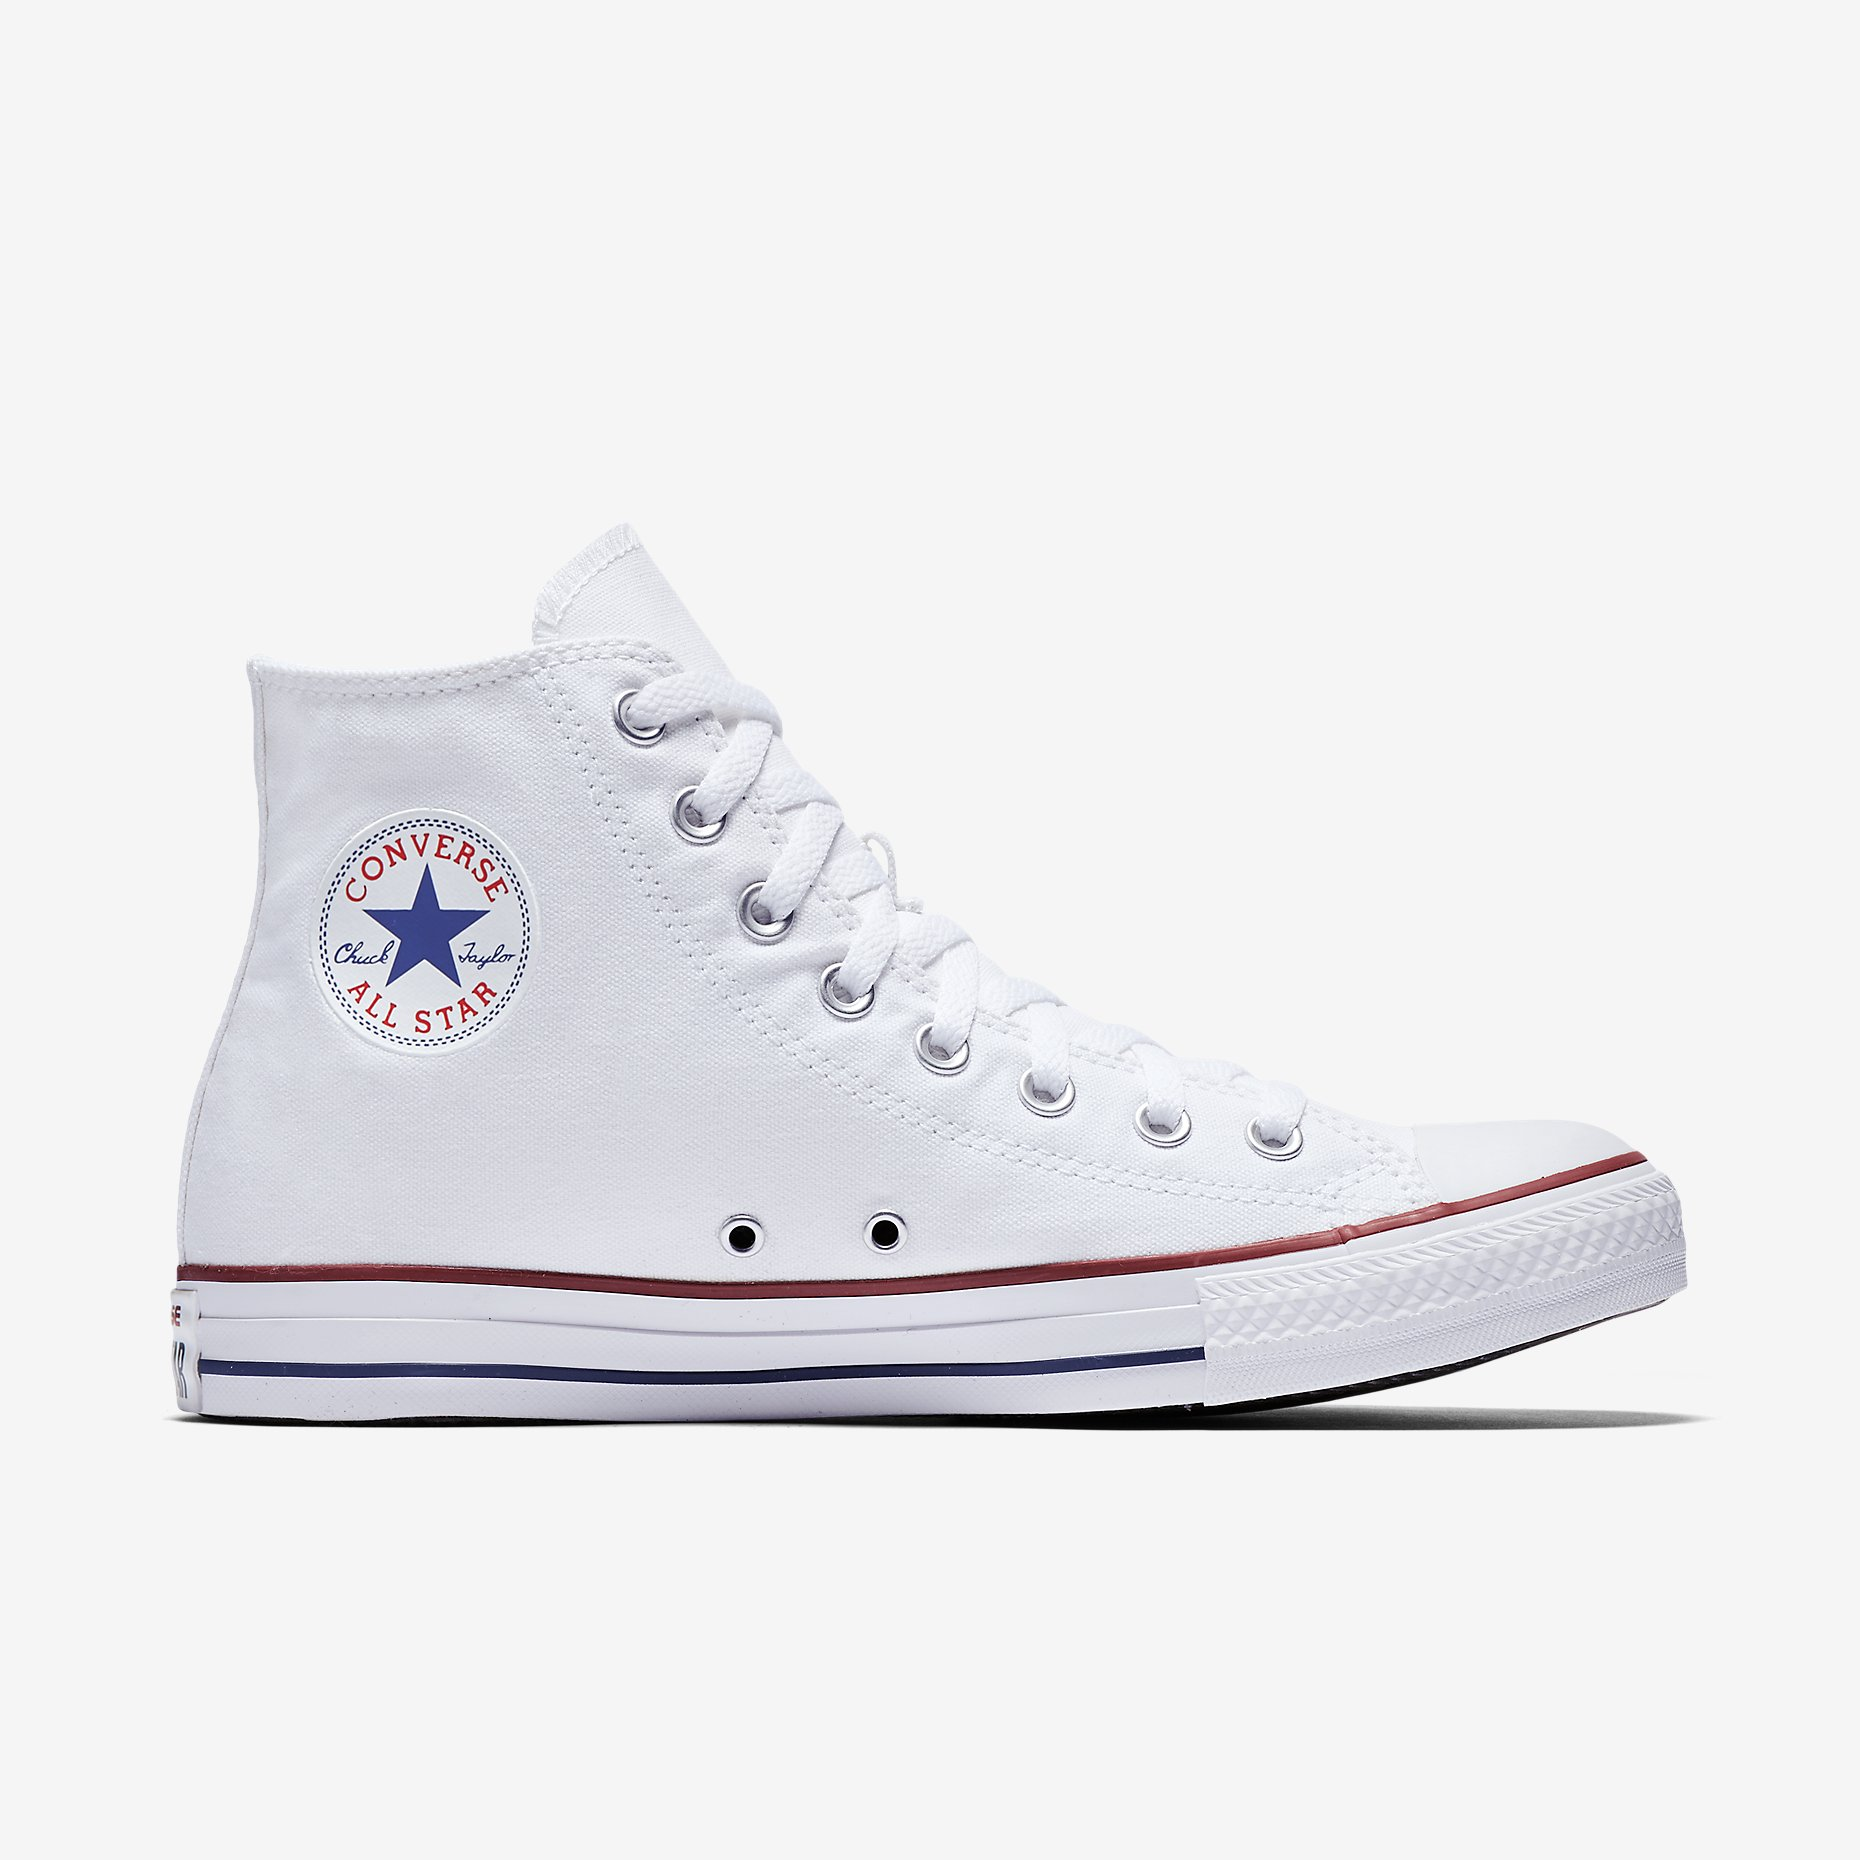 850d49e371e4 Converse Chuck Taylor All Star High Top White - Spinners Sports